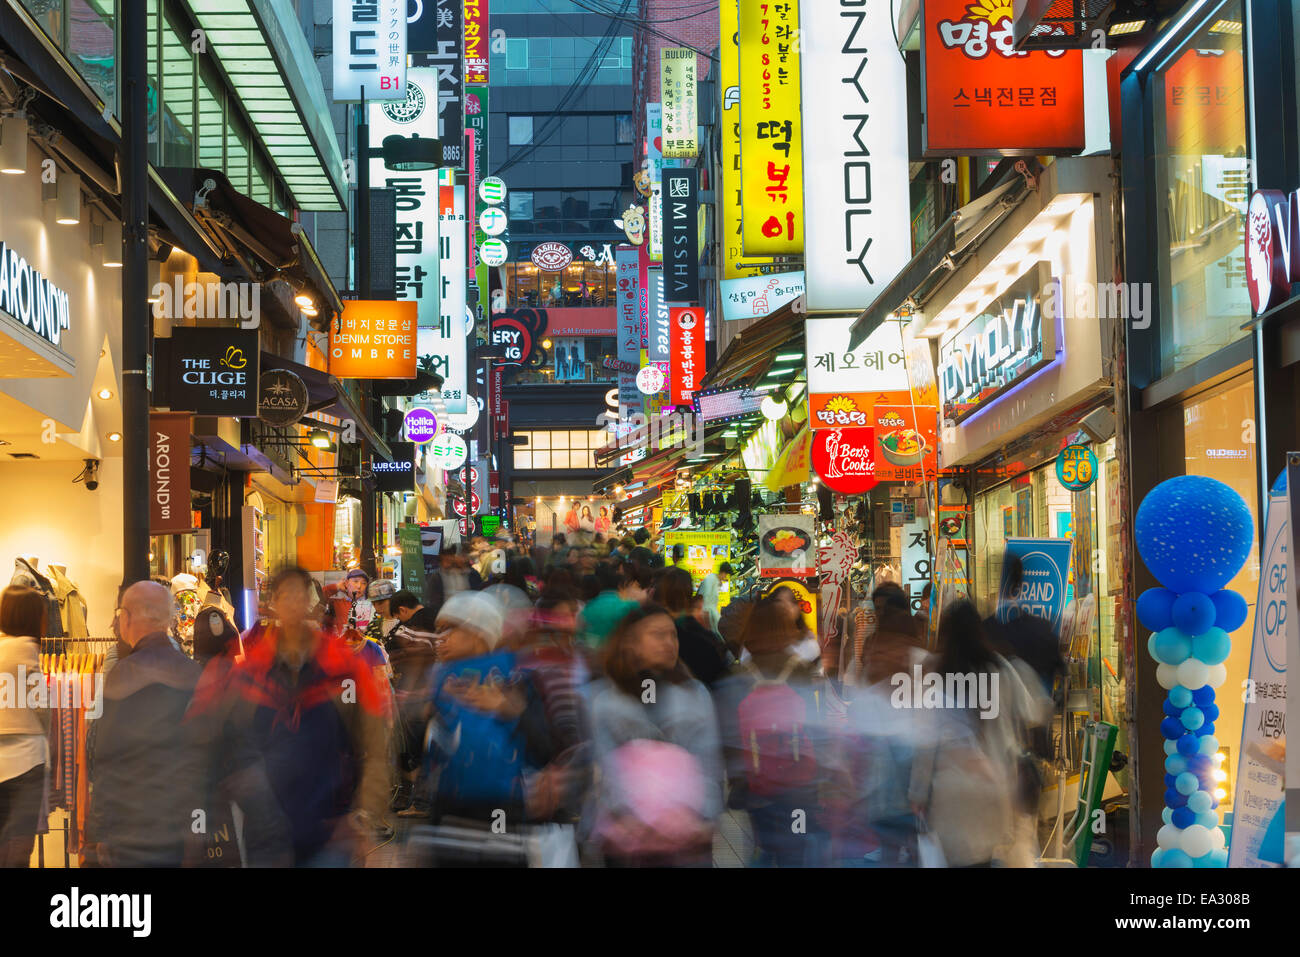 Neon lit streets of Myeong-dong, Seoul, South Korea, Asia - Stock Image